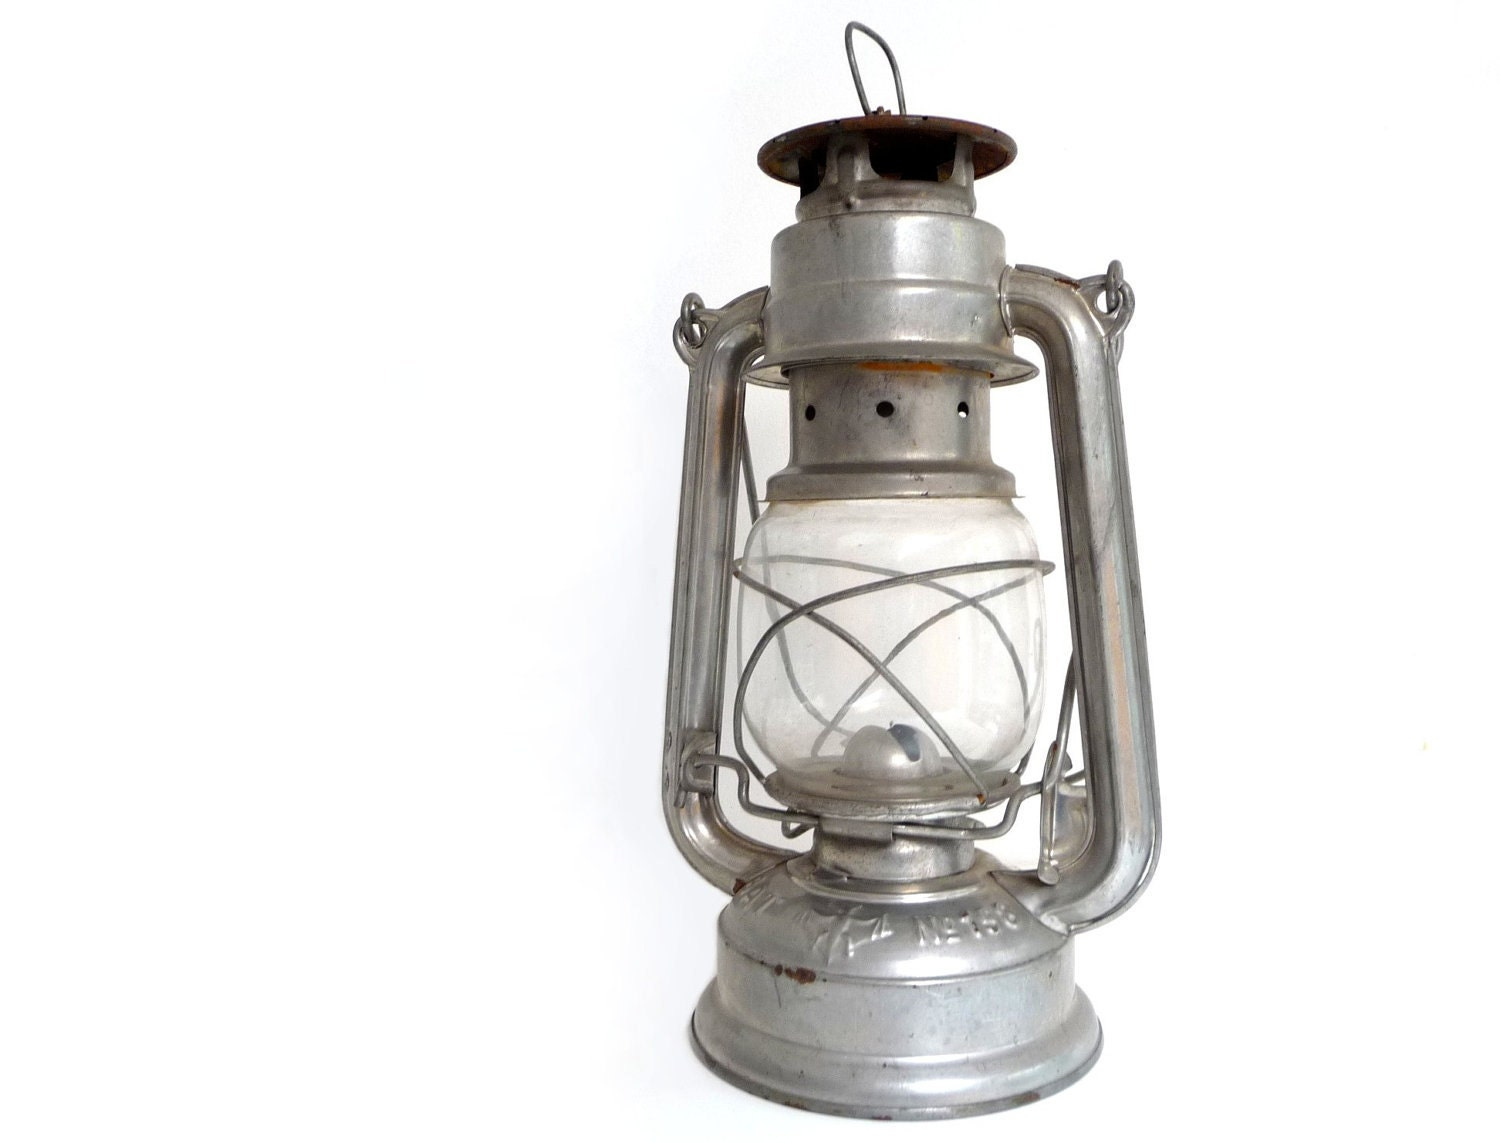 Vintage German Kerosene Lantern Bat No.158 Lamp Made in GDR